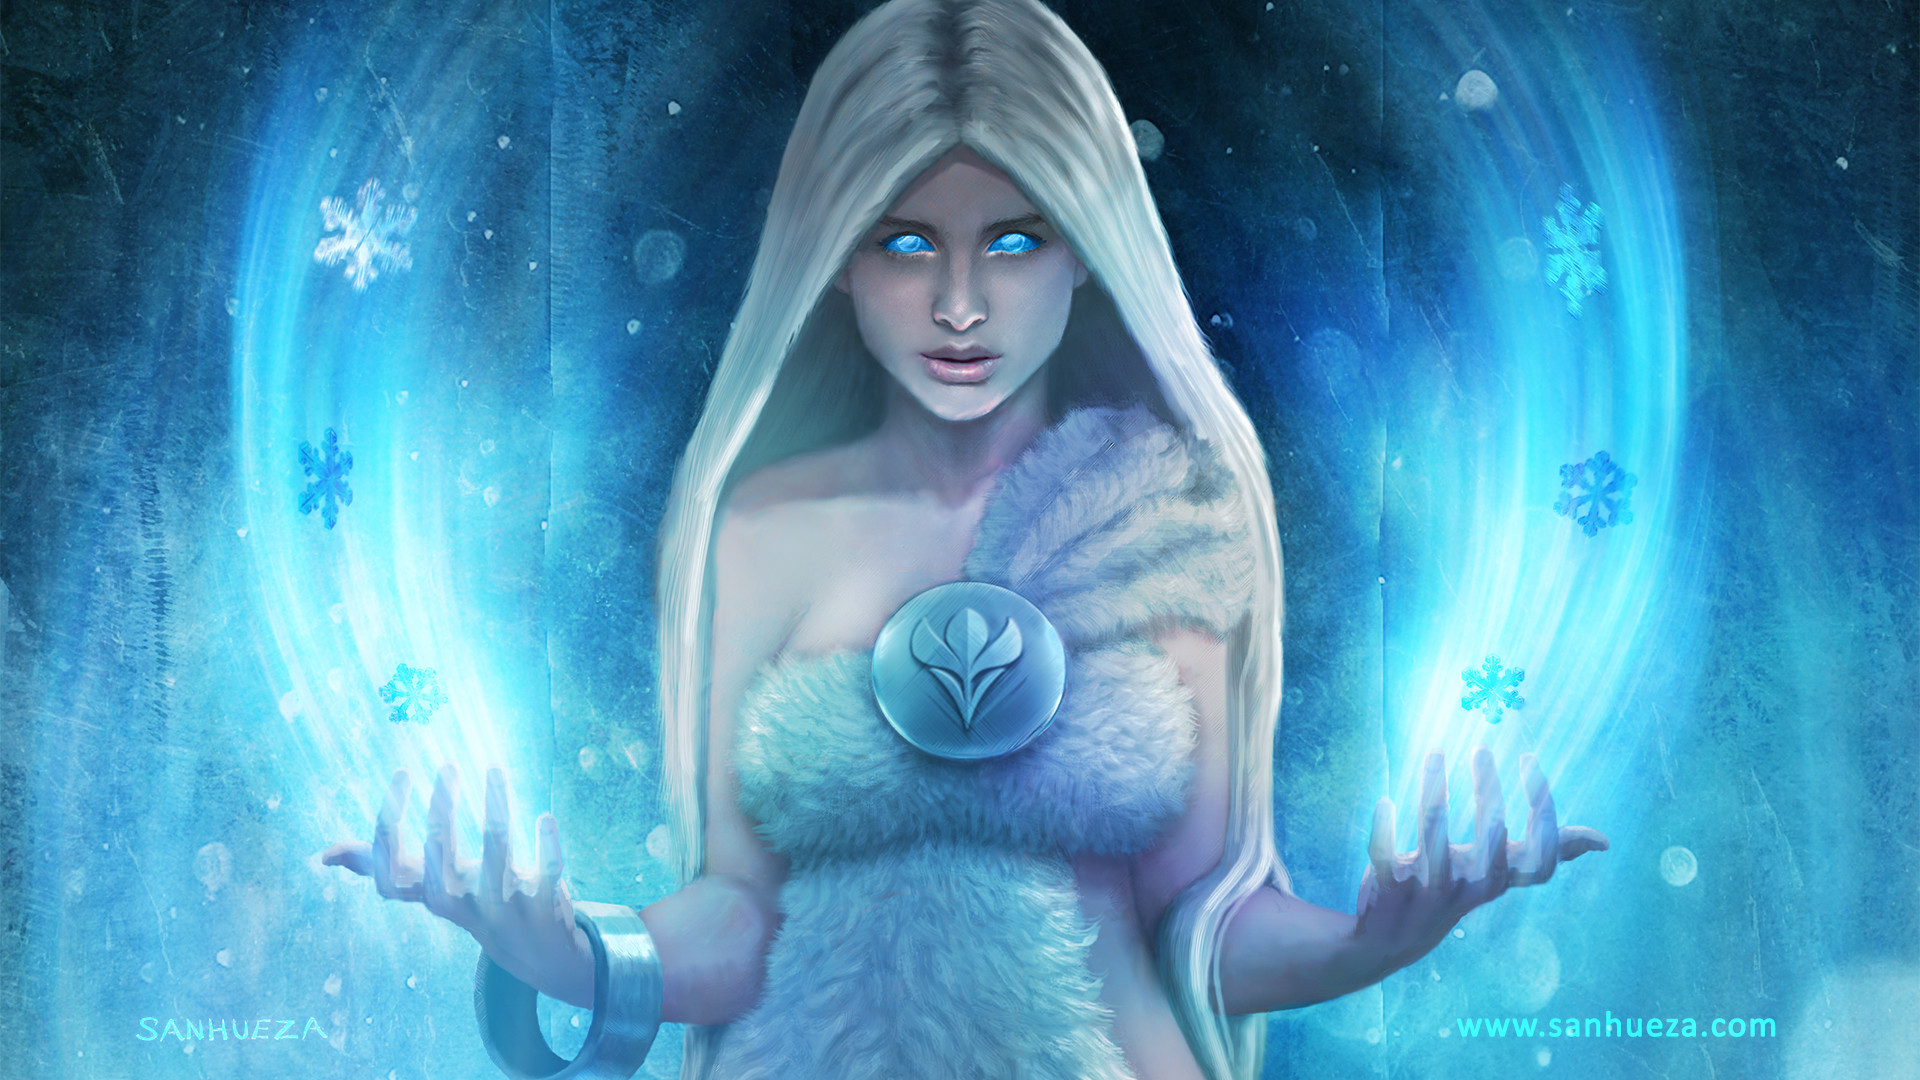 David sanhueza gameogami snowqueen wallpaper